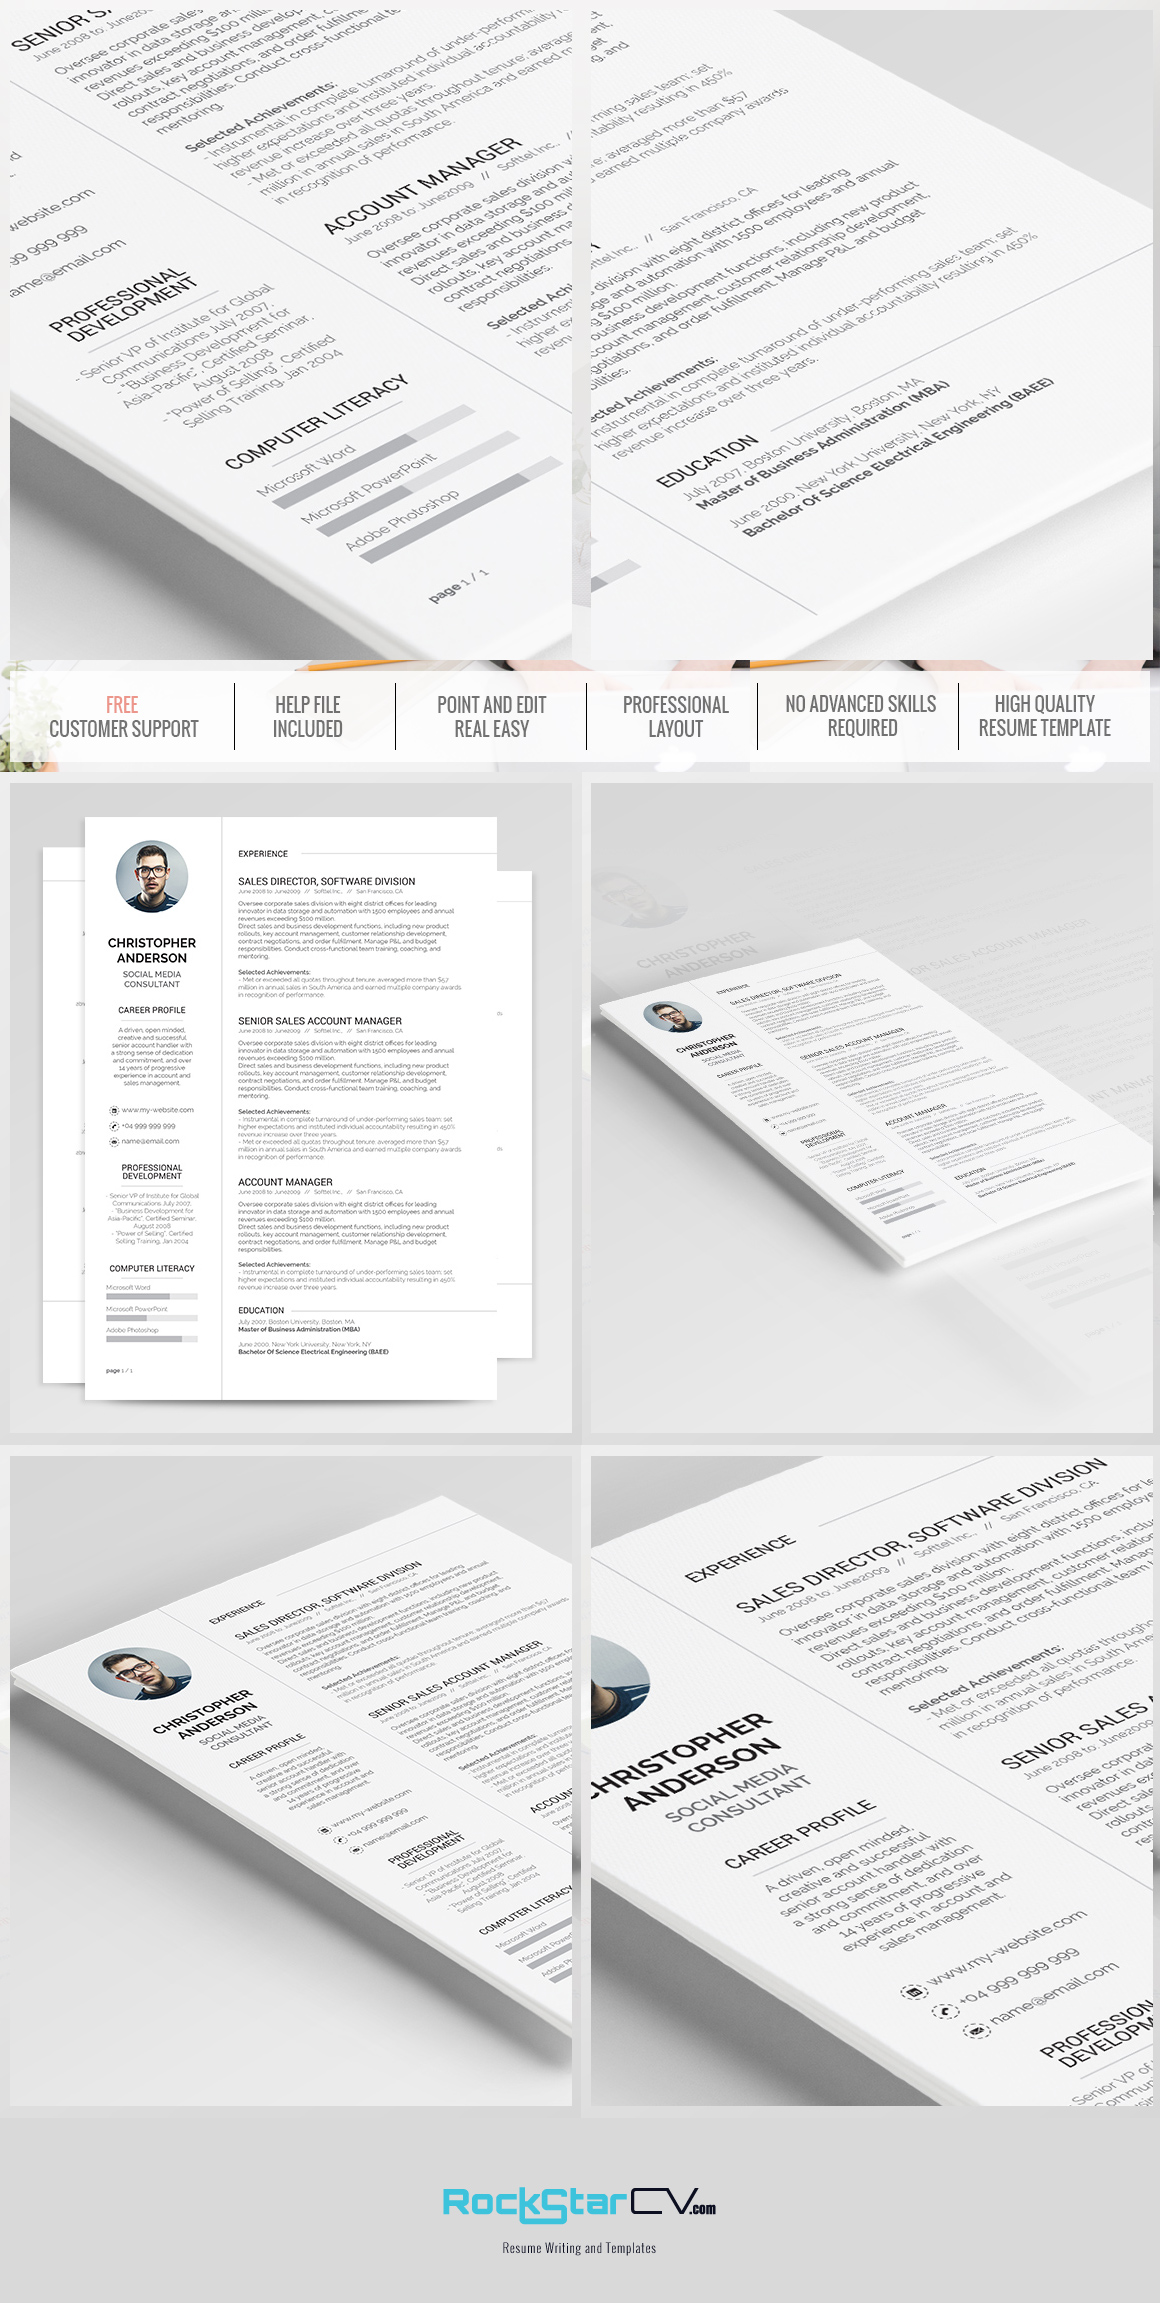 resume template synnove Professional Resume Examples resume template synnove ex le image 5